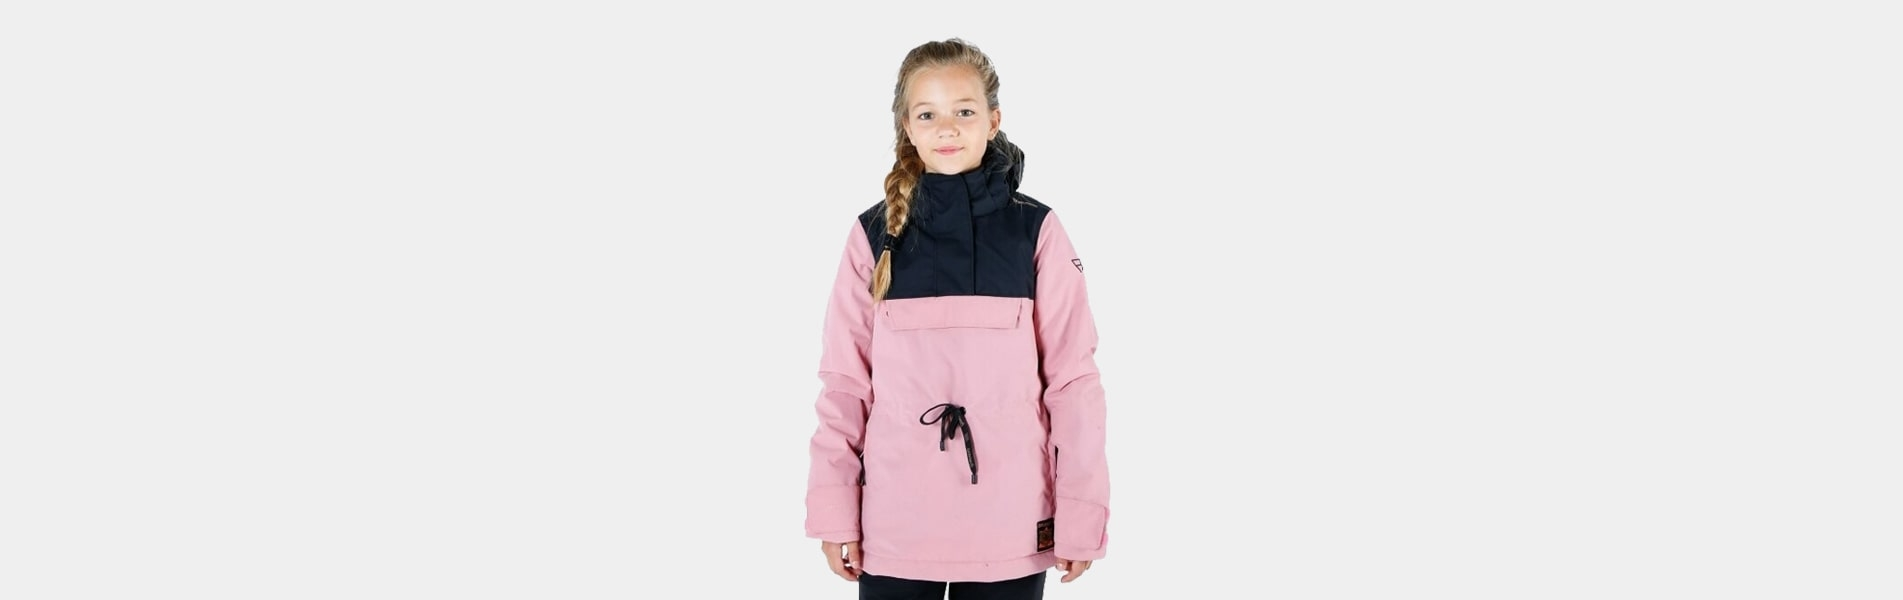 Girl's ski & snowboard jacket